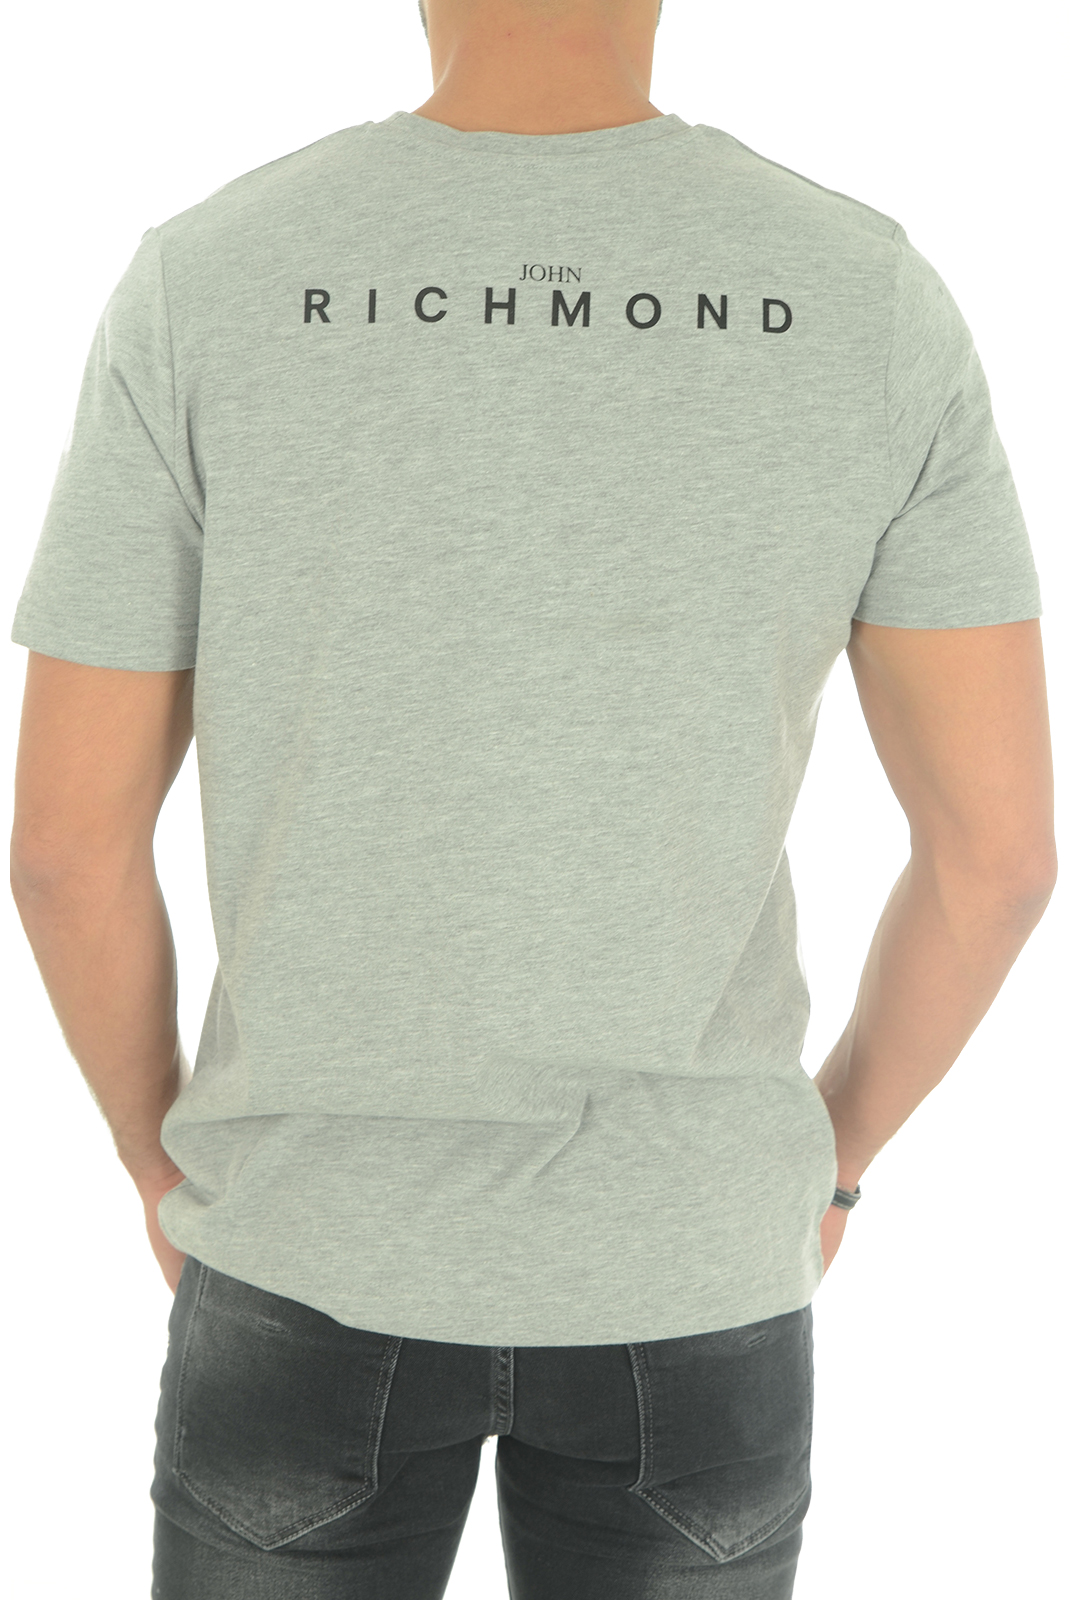 Tee-shirts  John richmond MATRINCA W0066 GRIGIO MEL